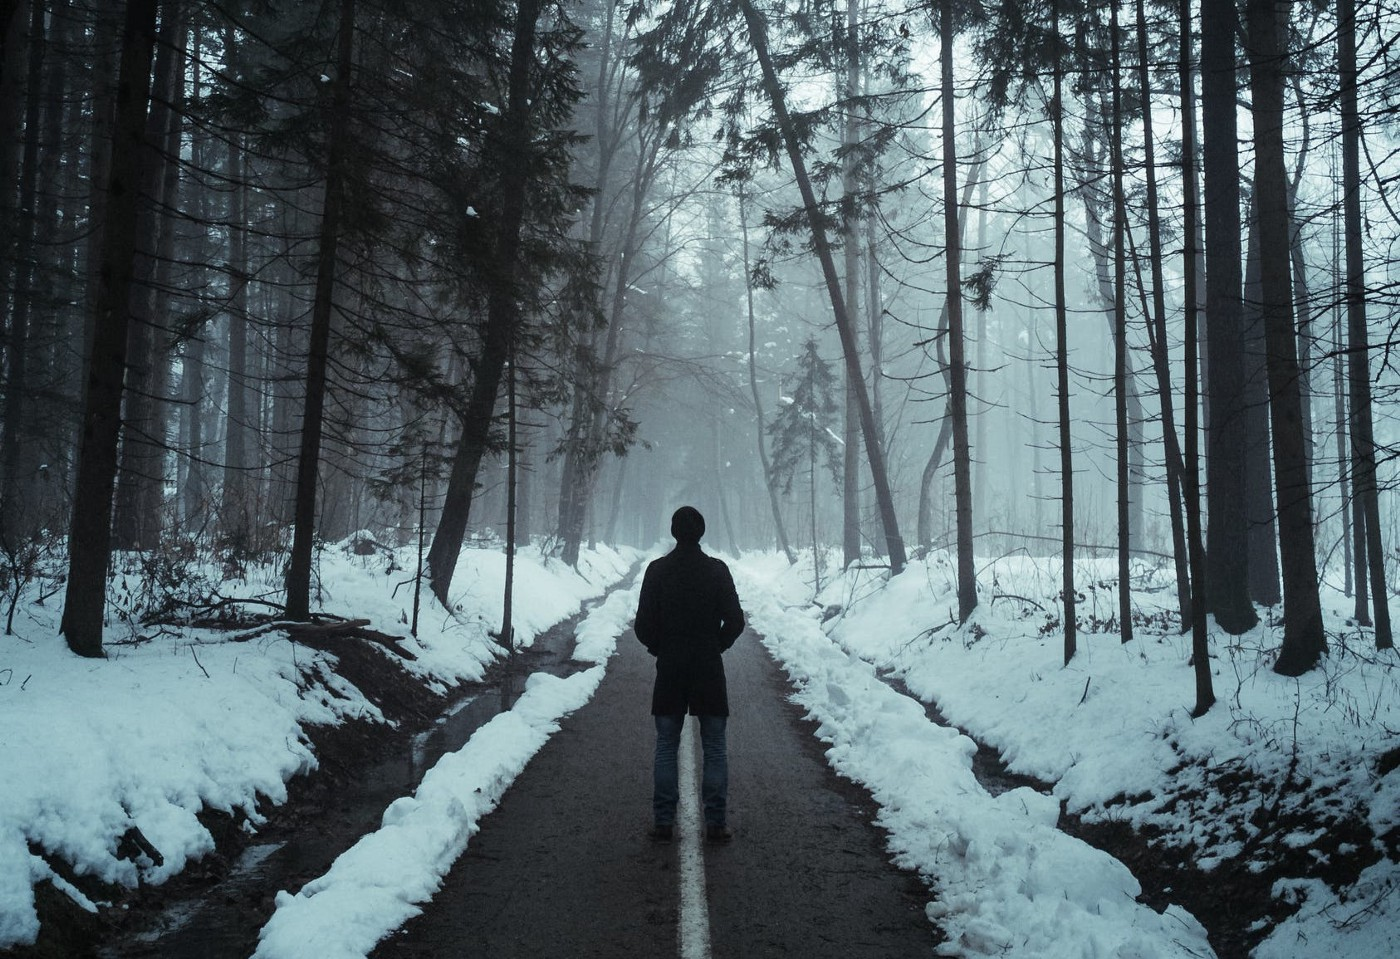 Man walking down snowy, dimly lit path